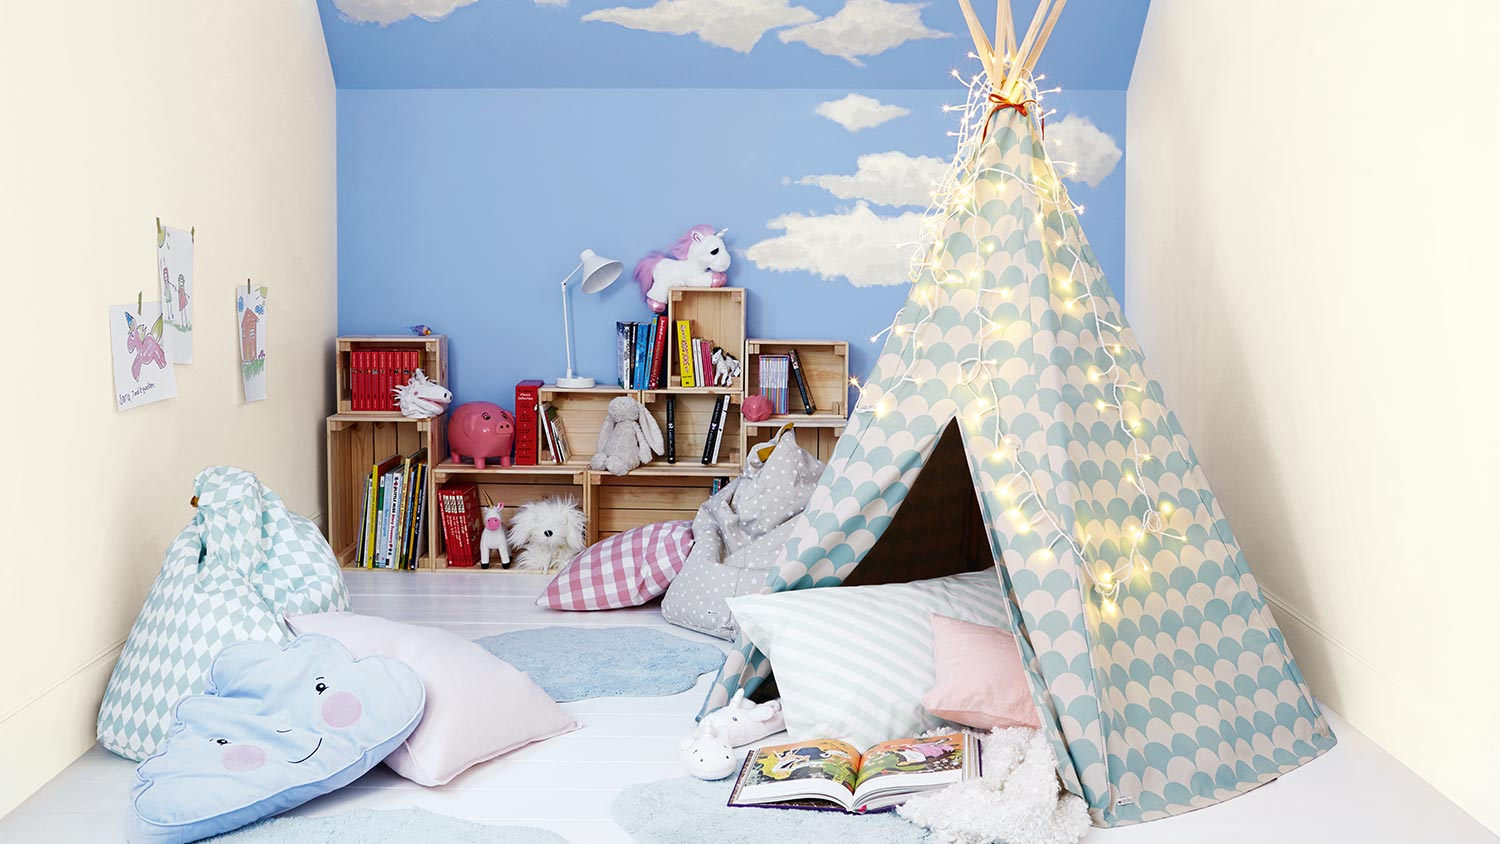 Storybook themed bedroom